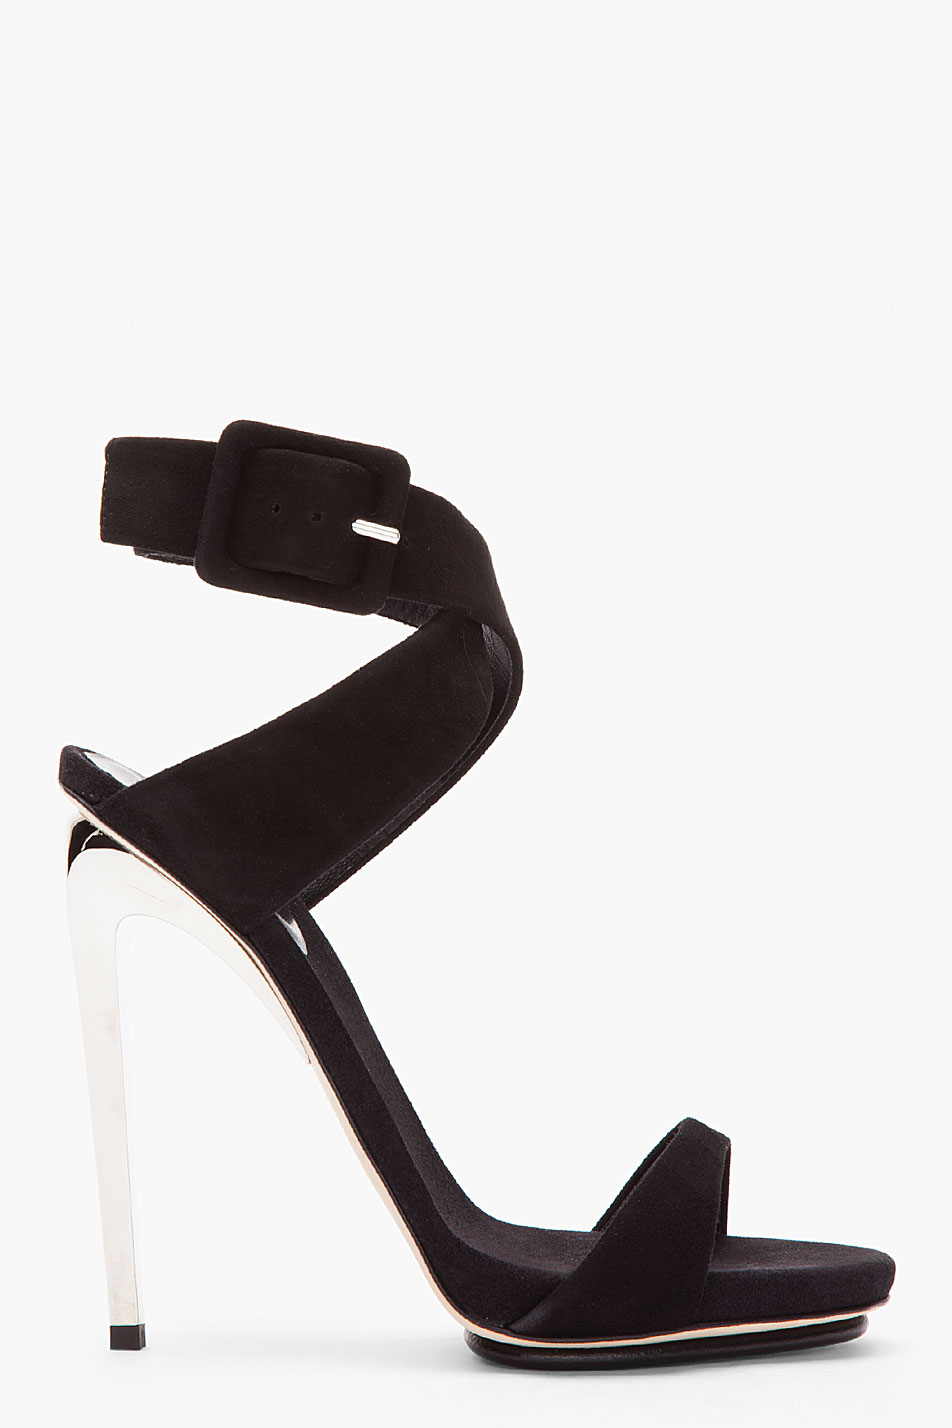 Black With Silver Heels | Tsaa Heel